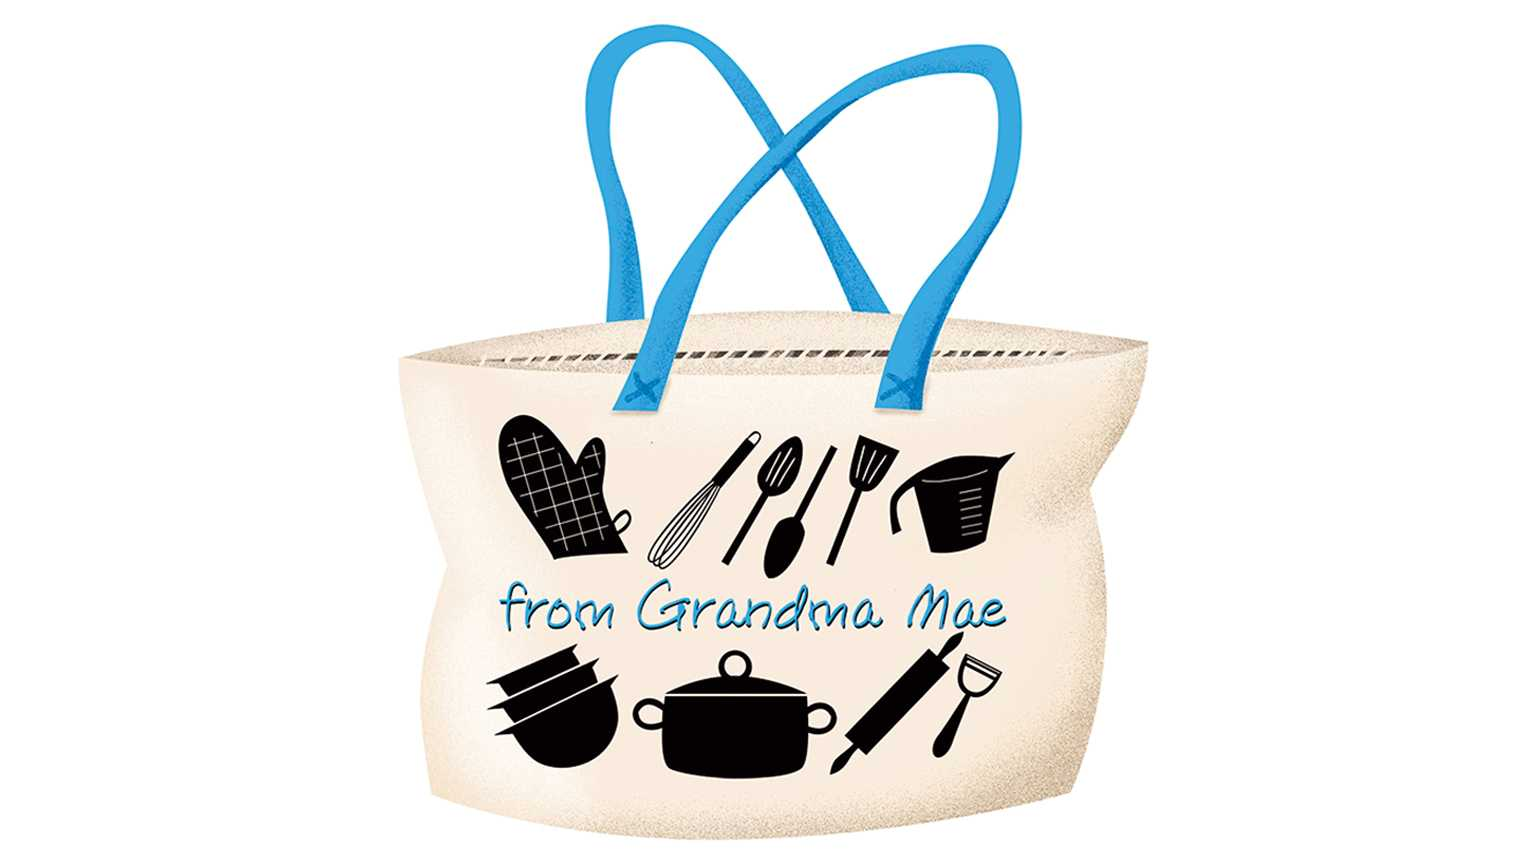 A tote bag that reads 'from Grandma Mae' with cooking utensil icons.